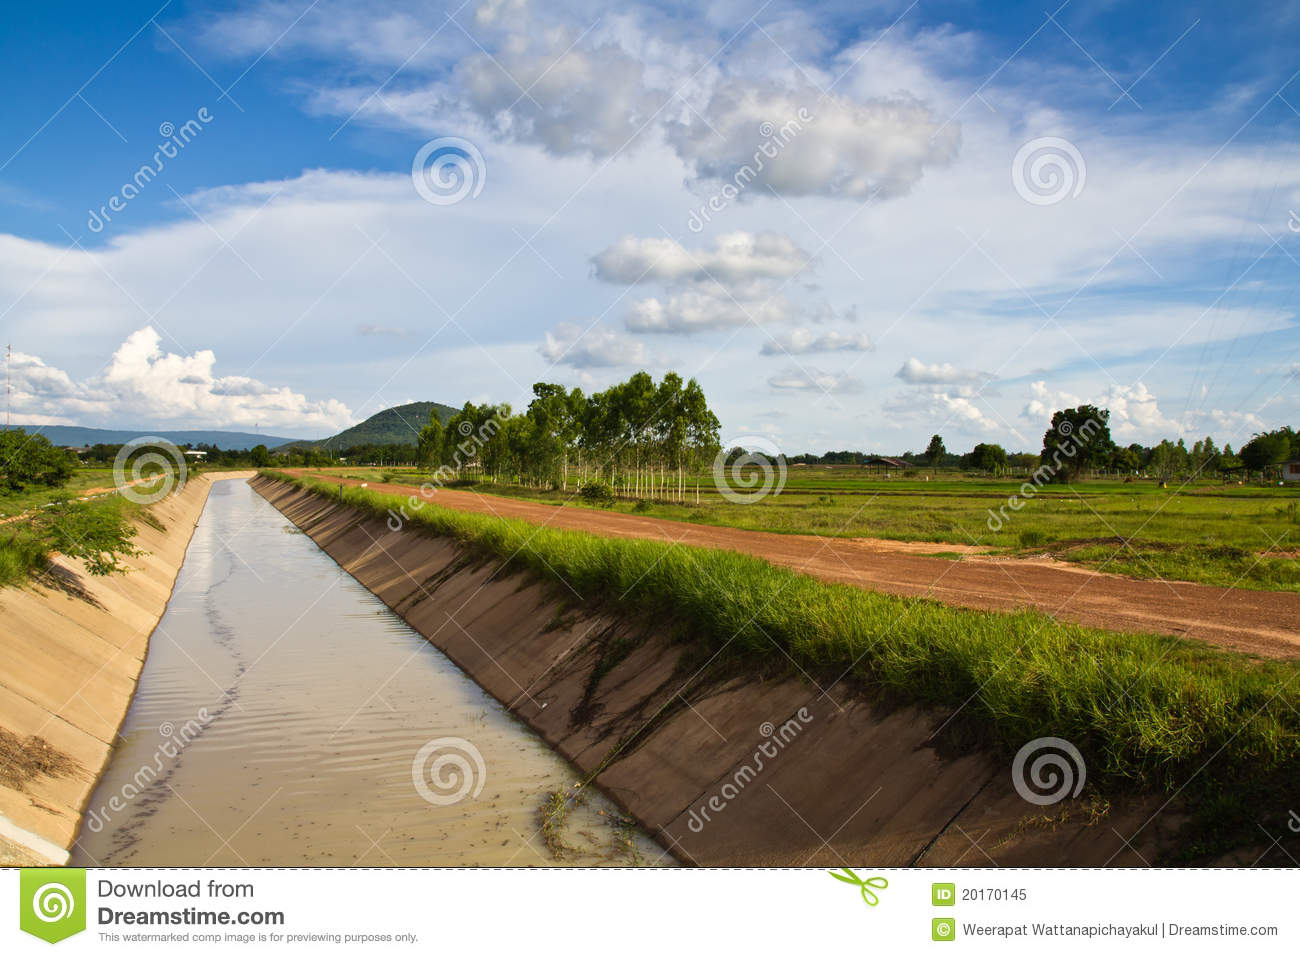 Agricultural Irrigation Canal : Irrigation canal royalty free stock photo image